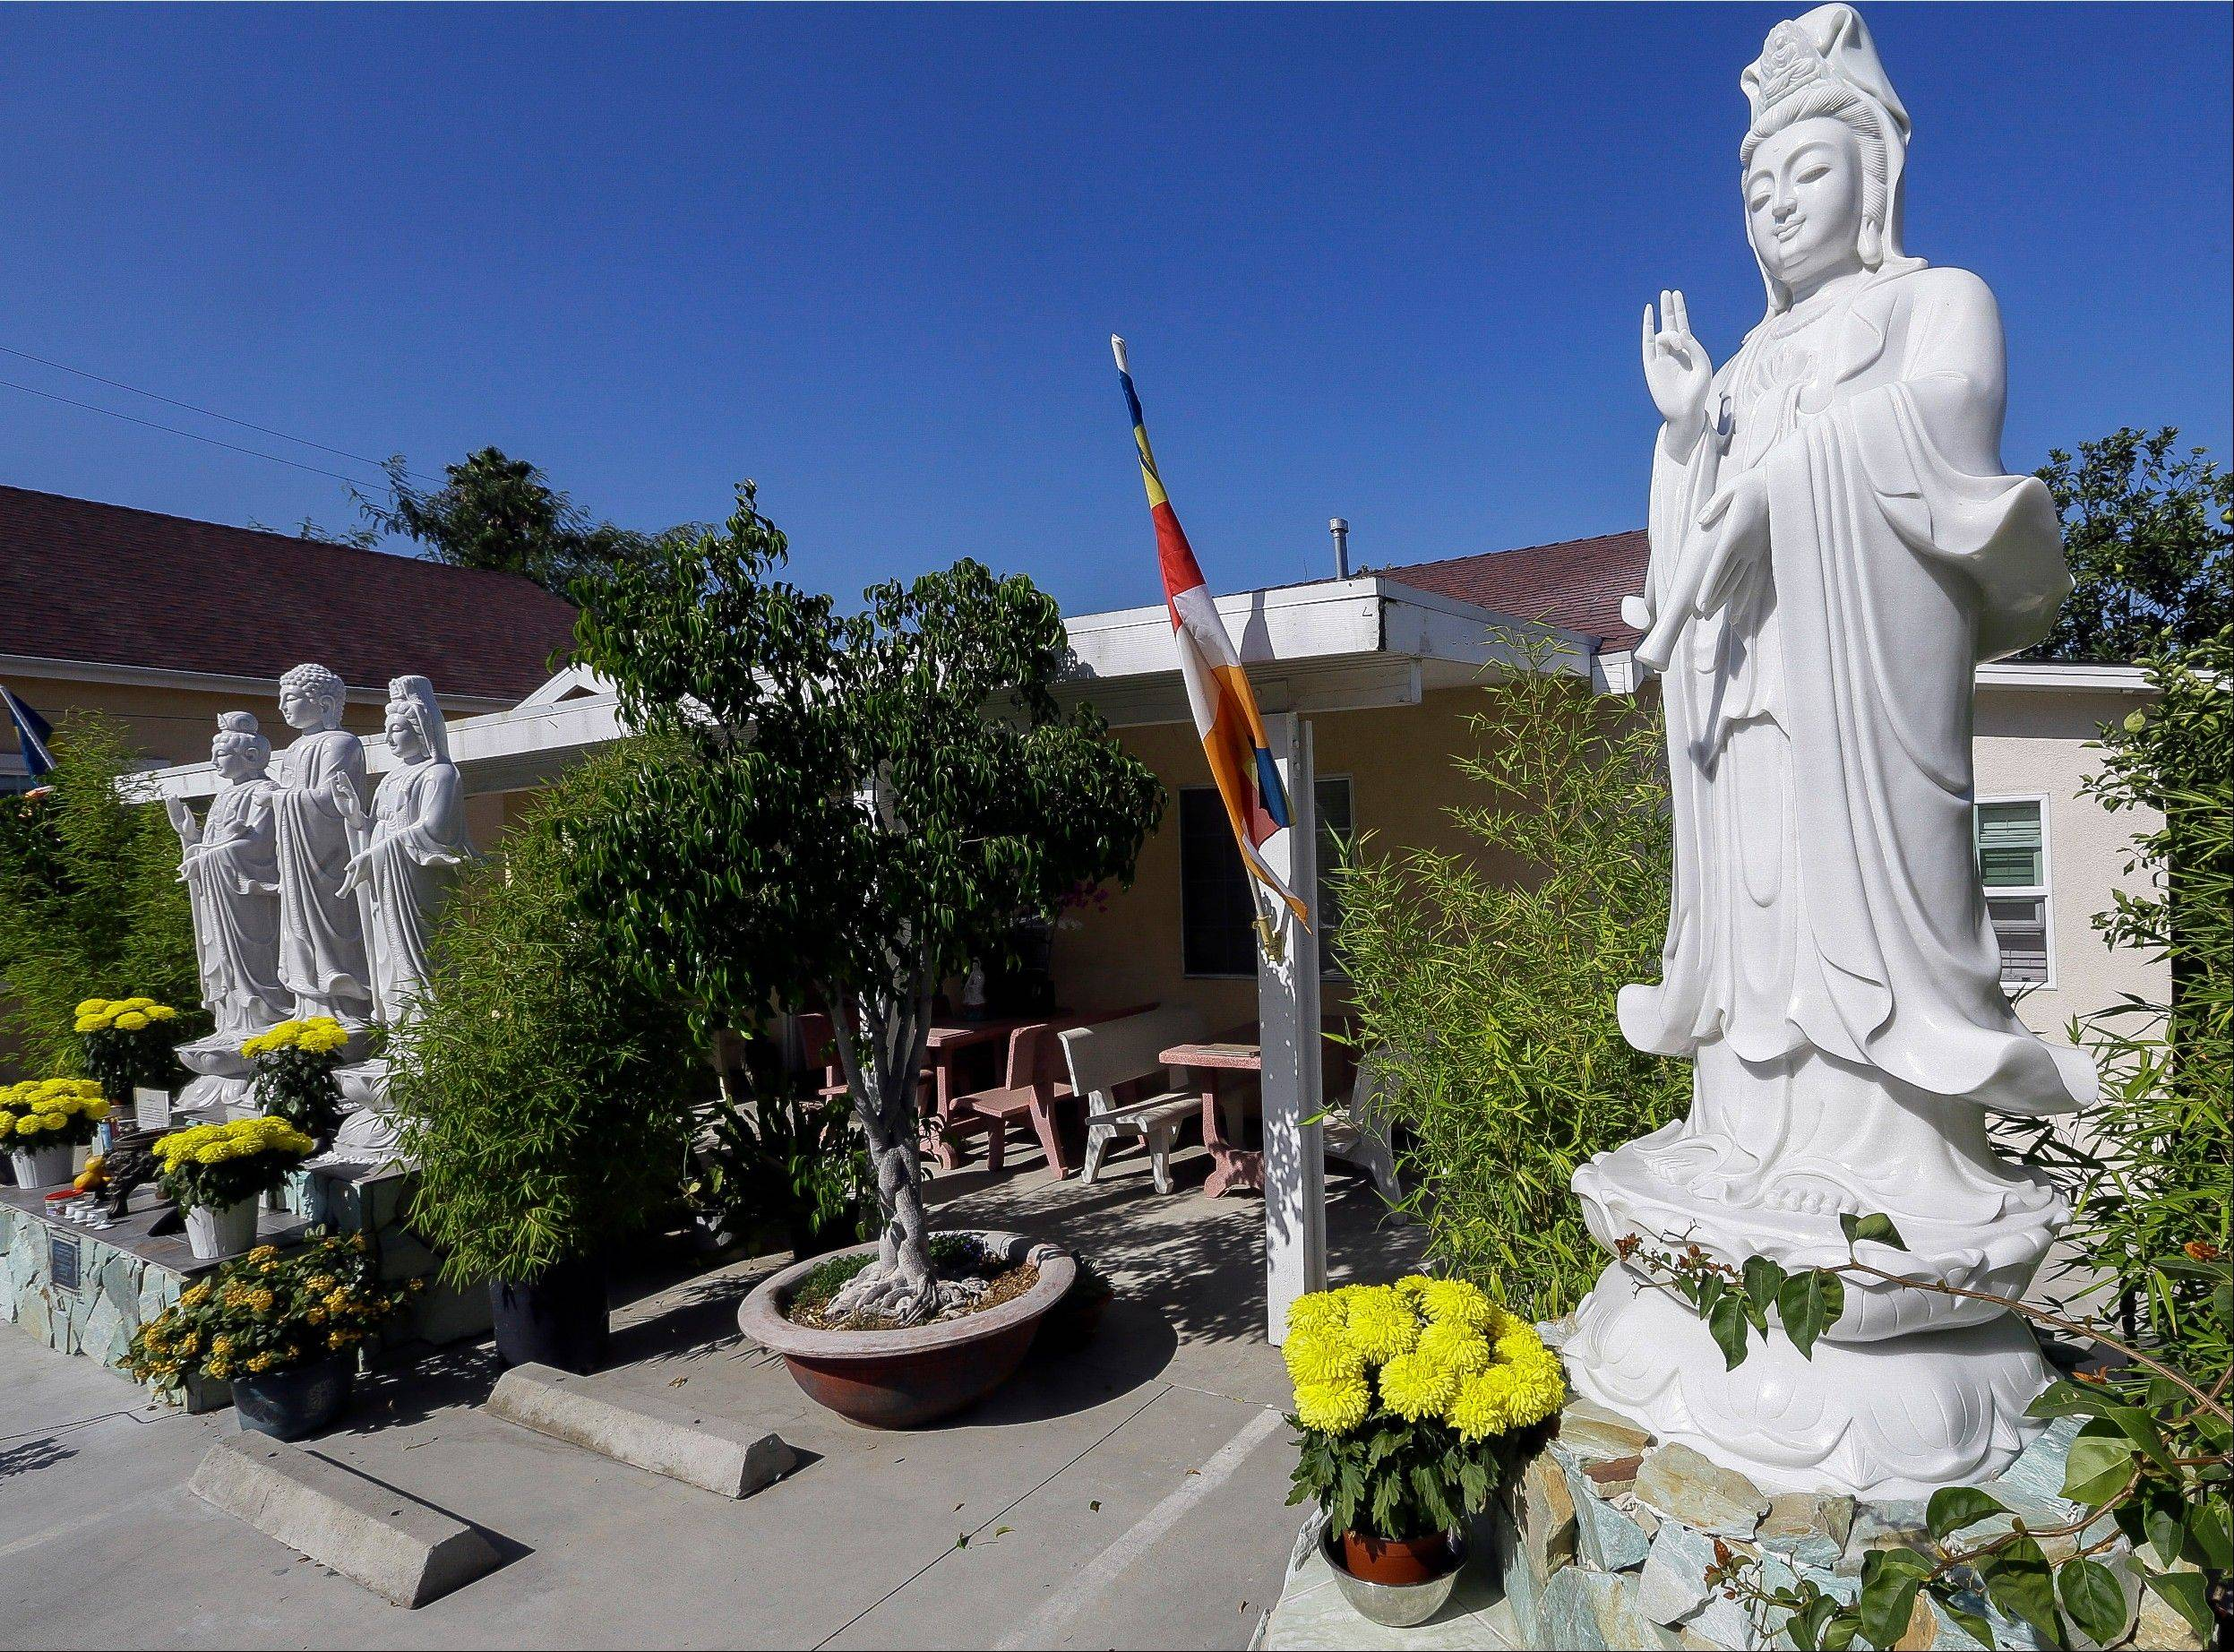 In this Sept. 18, 2013, photo, Buddhist statues decorate the entrance to the Lu Mountain Temple in Rosemead, Calif. The temple has become a repository for the colorful crystals and a tooth and a hair that are believed to have come from the body of the Buddha himself.